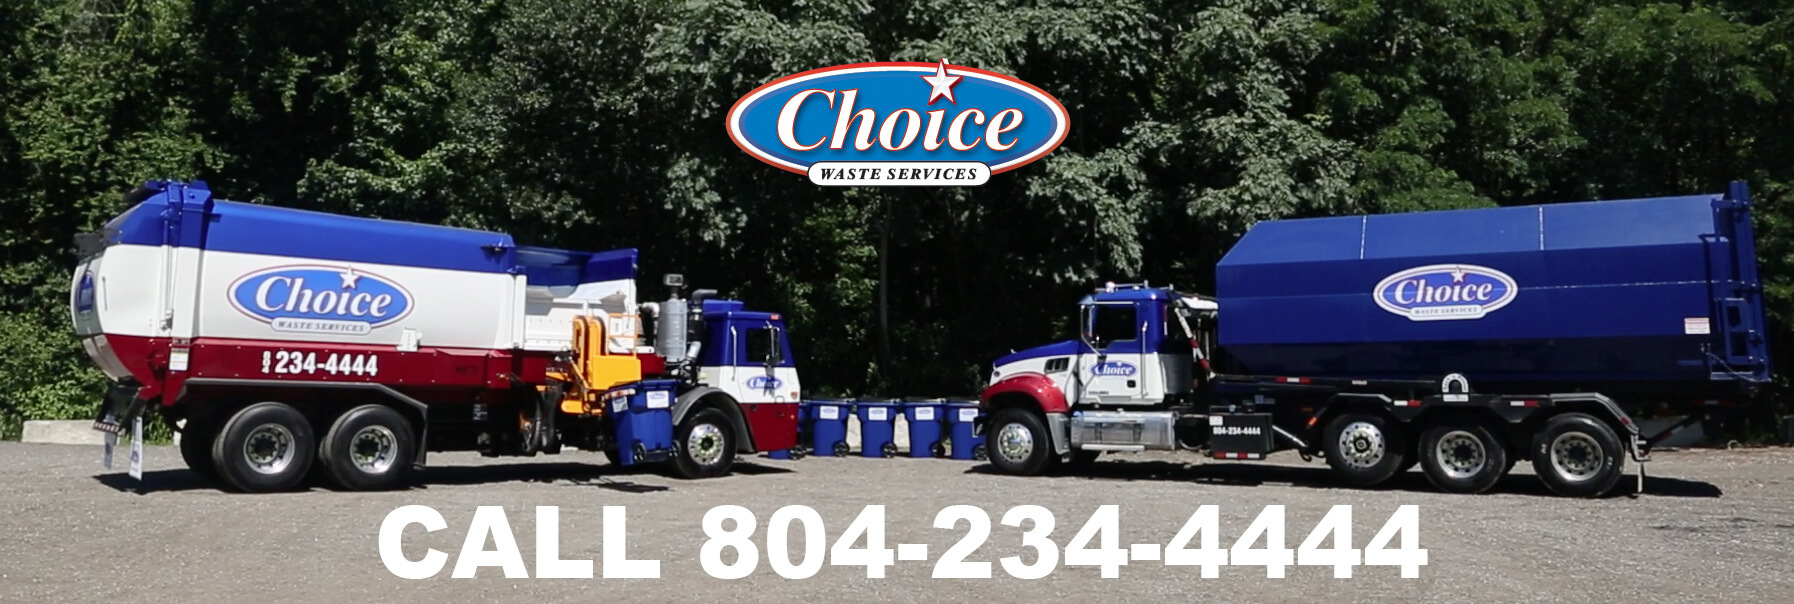 Choice Waste Services